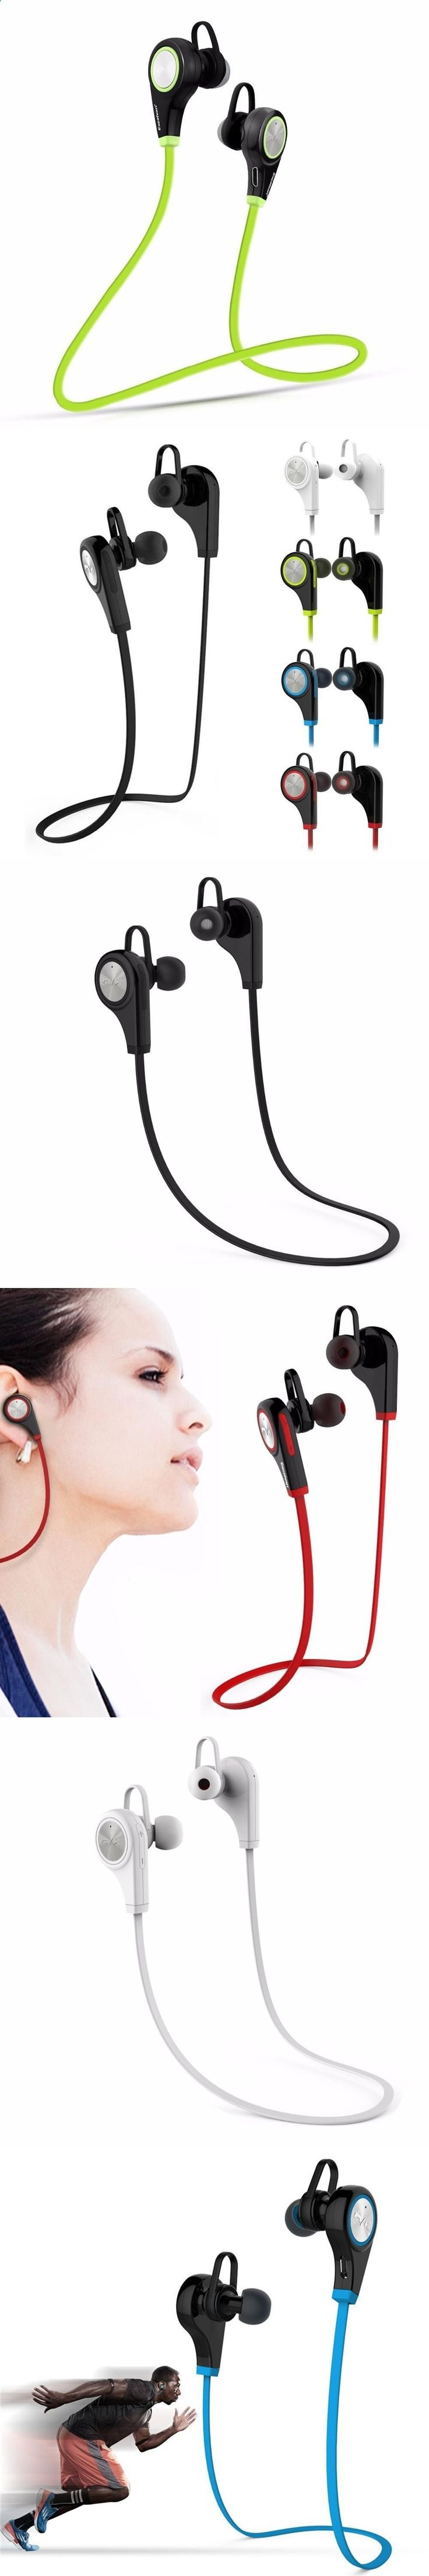 Sports Headphones - Sports Headphones - Bluetooth Earphone Wireless Sports Headphones Headset Running Music Stereo Earbuds Handsfree with Mic for Xiaomi Samsung - If you usually go out to run, walk or any other sport in which you usually carry music to accompany or motivate you, we have selected 13 models of sports headphones that we consider among the best in the market for different aspects, from comfort to use to design, sound quality or value for money, so that you find variety and...